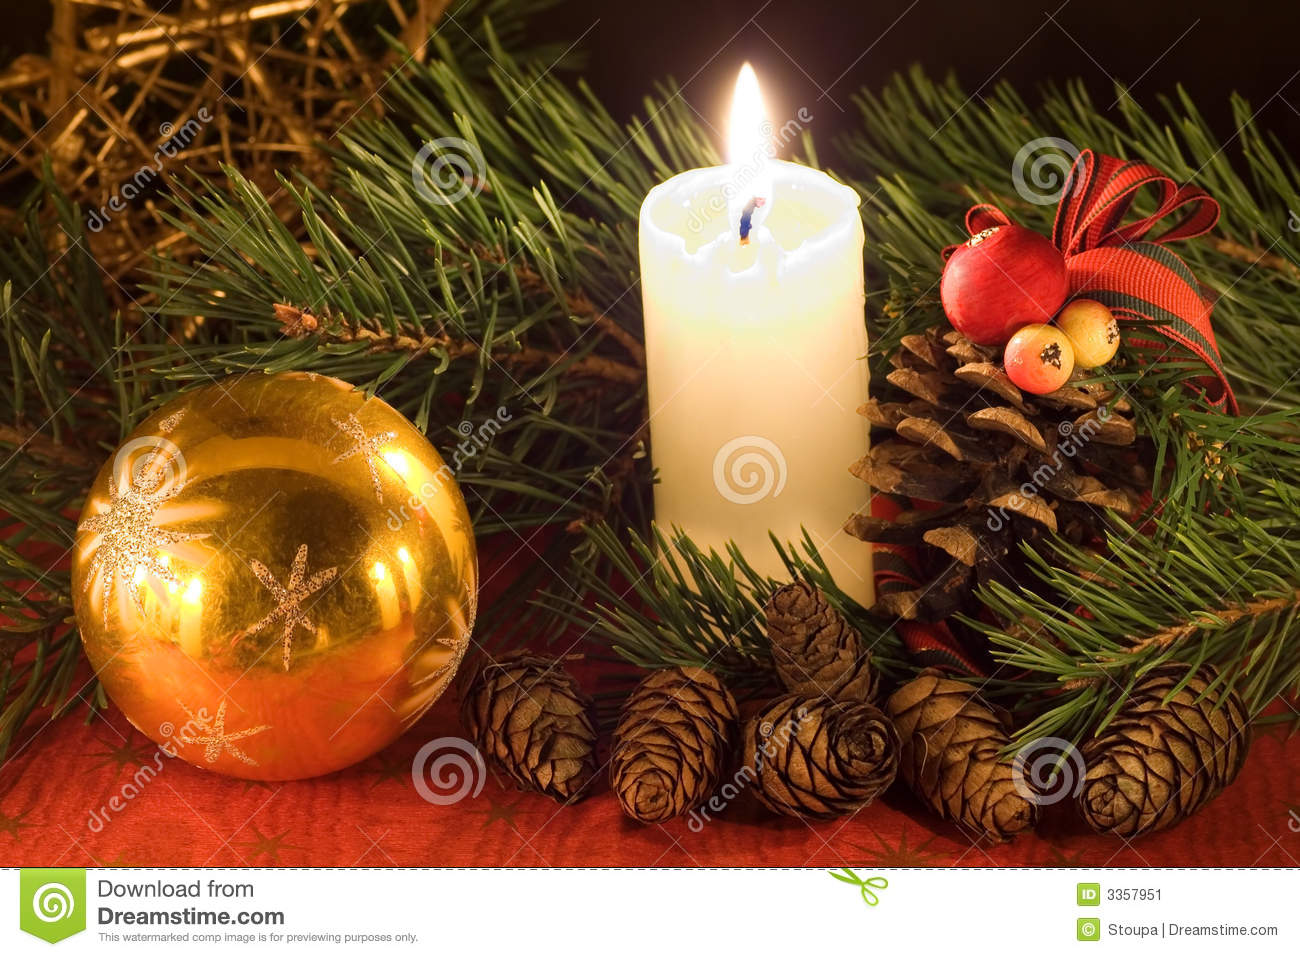 Christmas scene with golden ball white candle and cones in low light